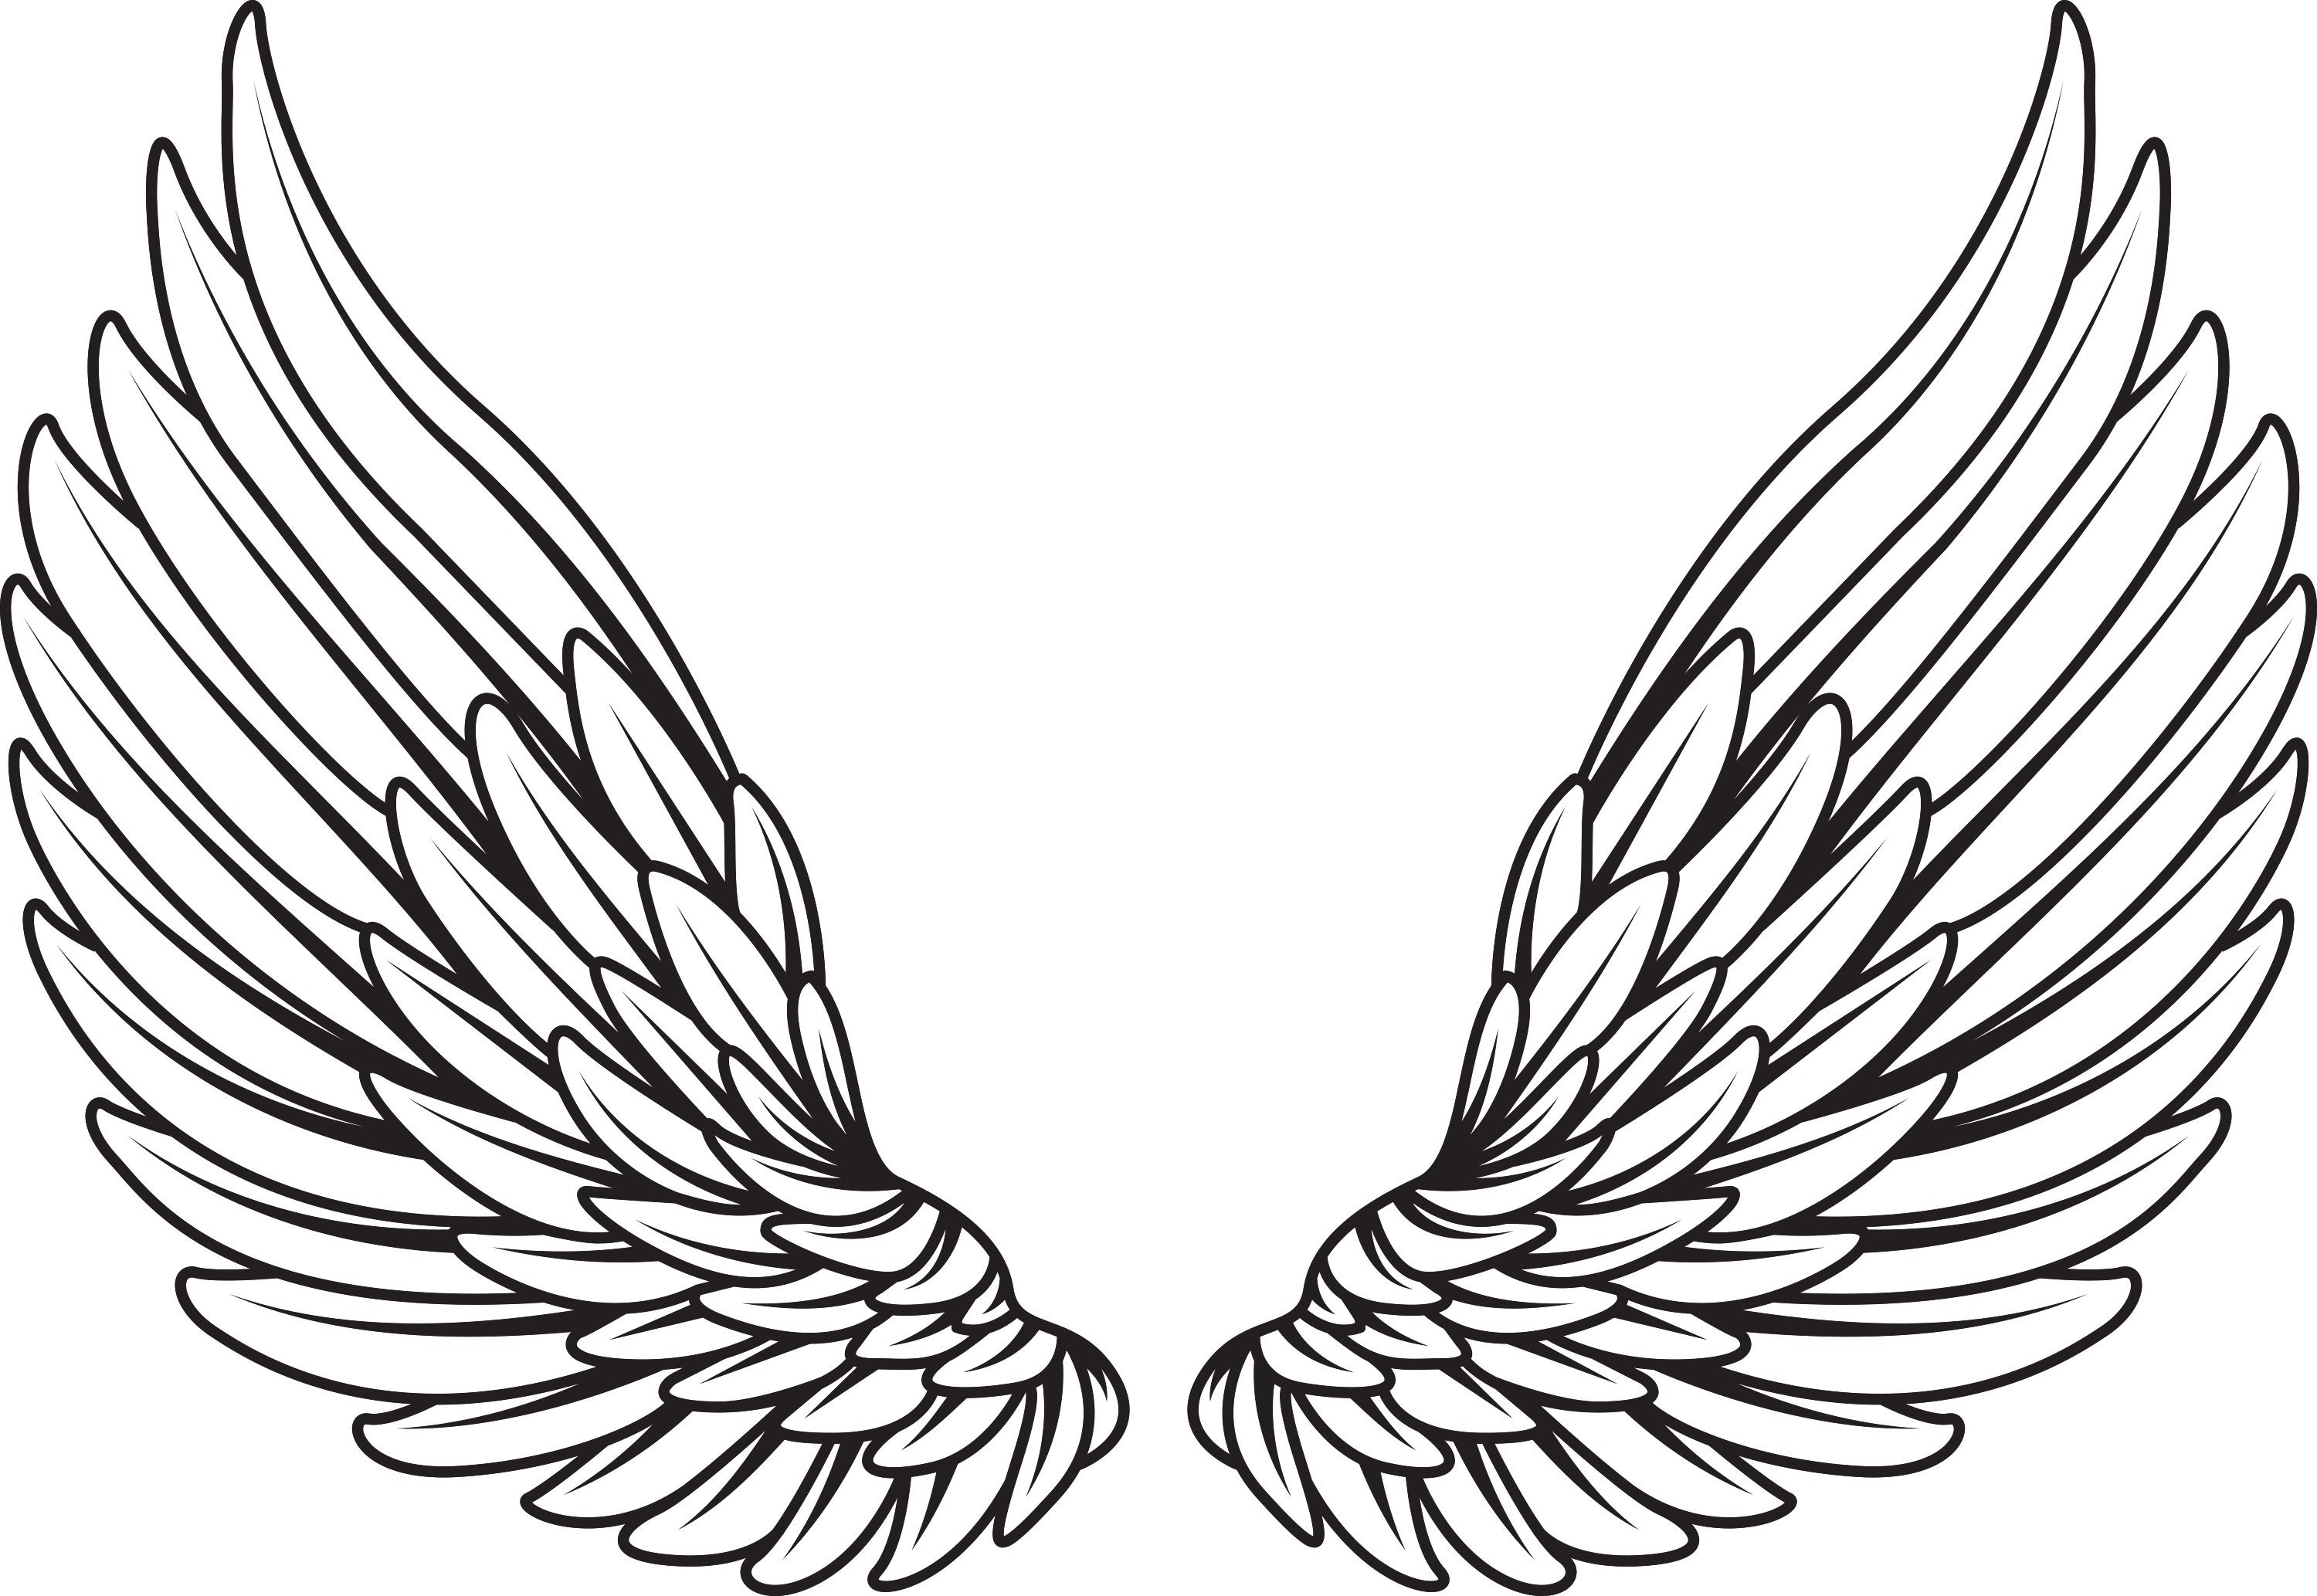 wings vector element mkimxn8d jpg 3000 2067 pinterest rh pinterest com angel wings vector free angel wings vector free